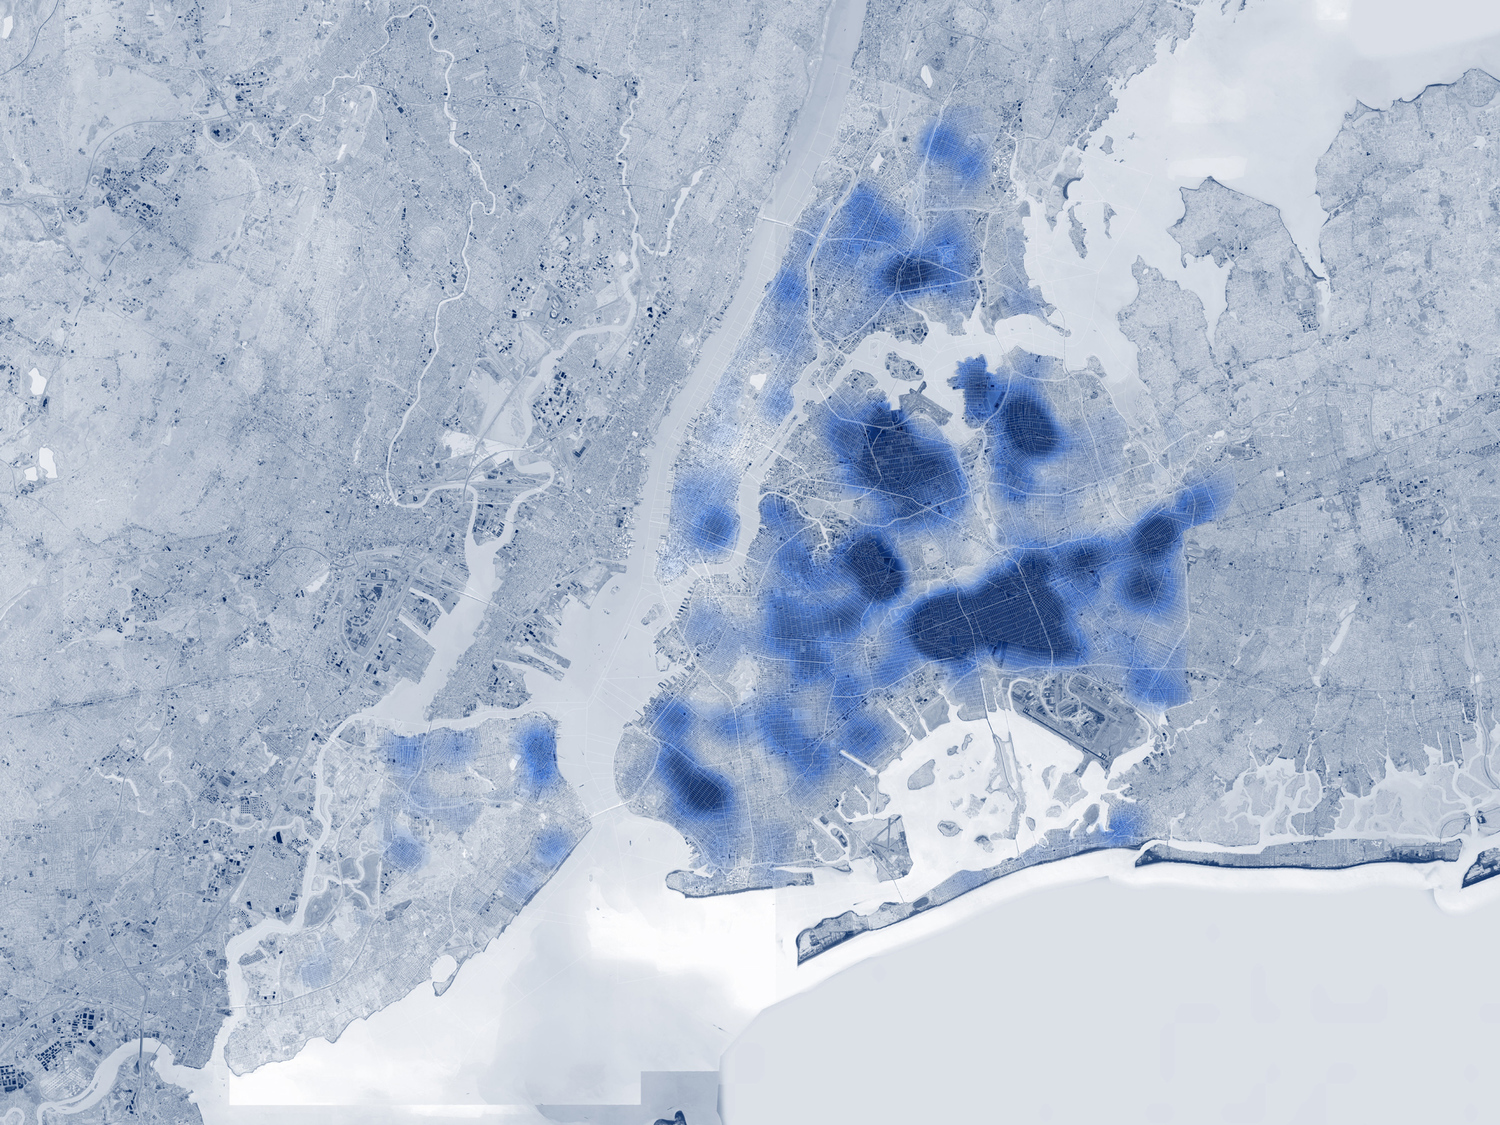 SITU Studio mapped the geographic spread of illegally subdivided, high-density dwellings across New York City based on complaints to the Department of Buildings.